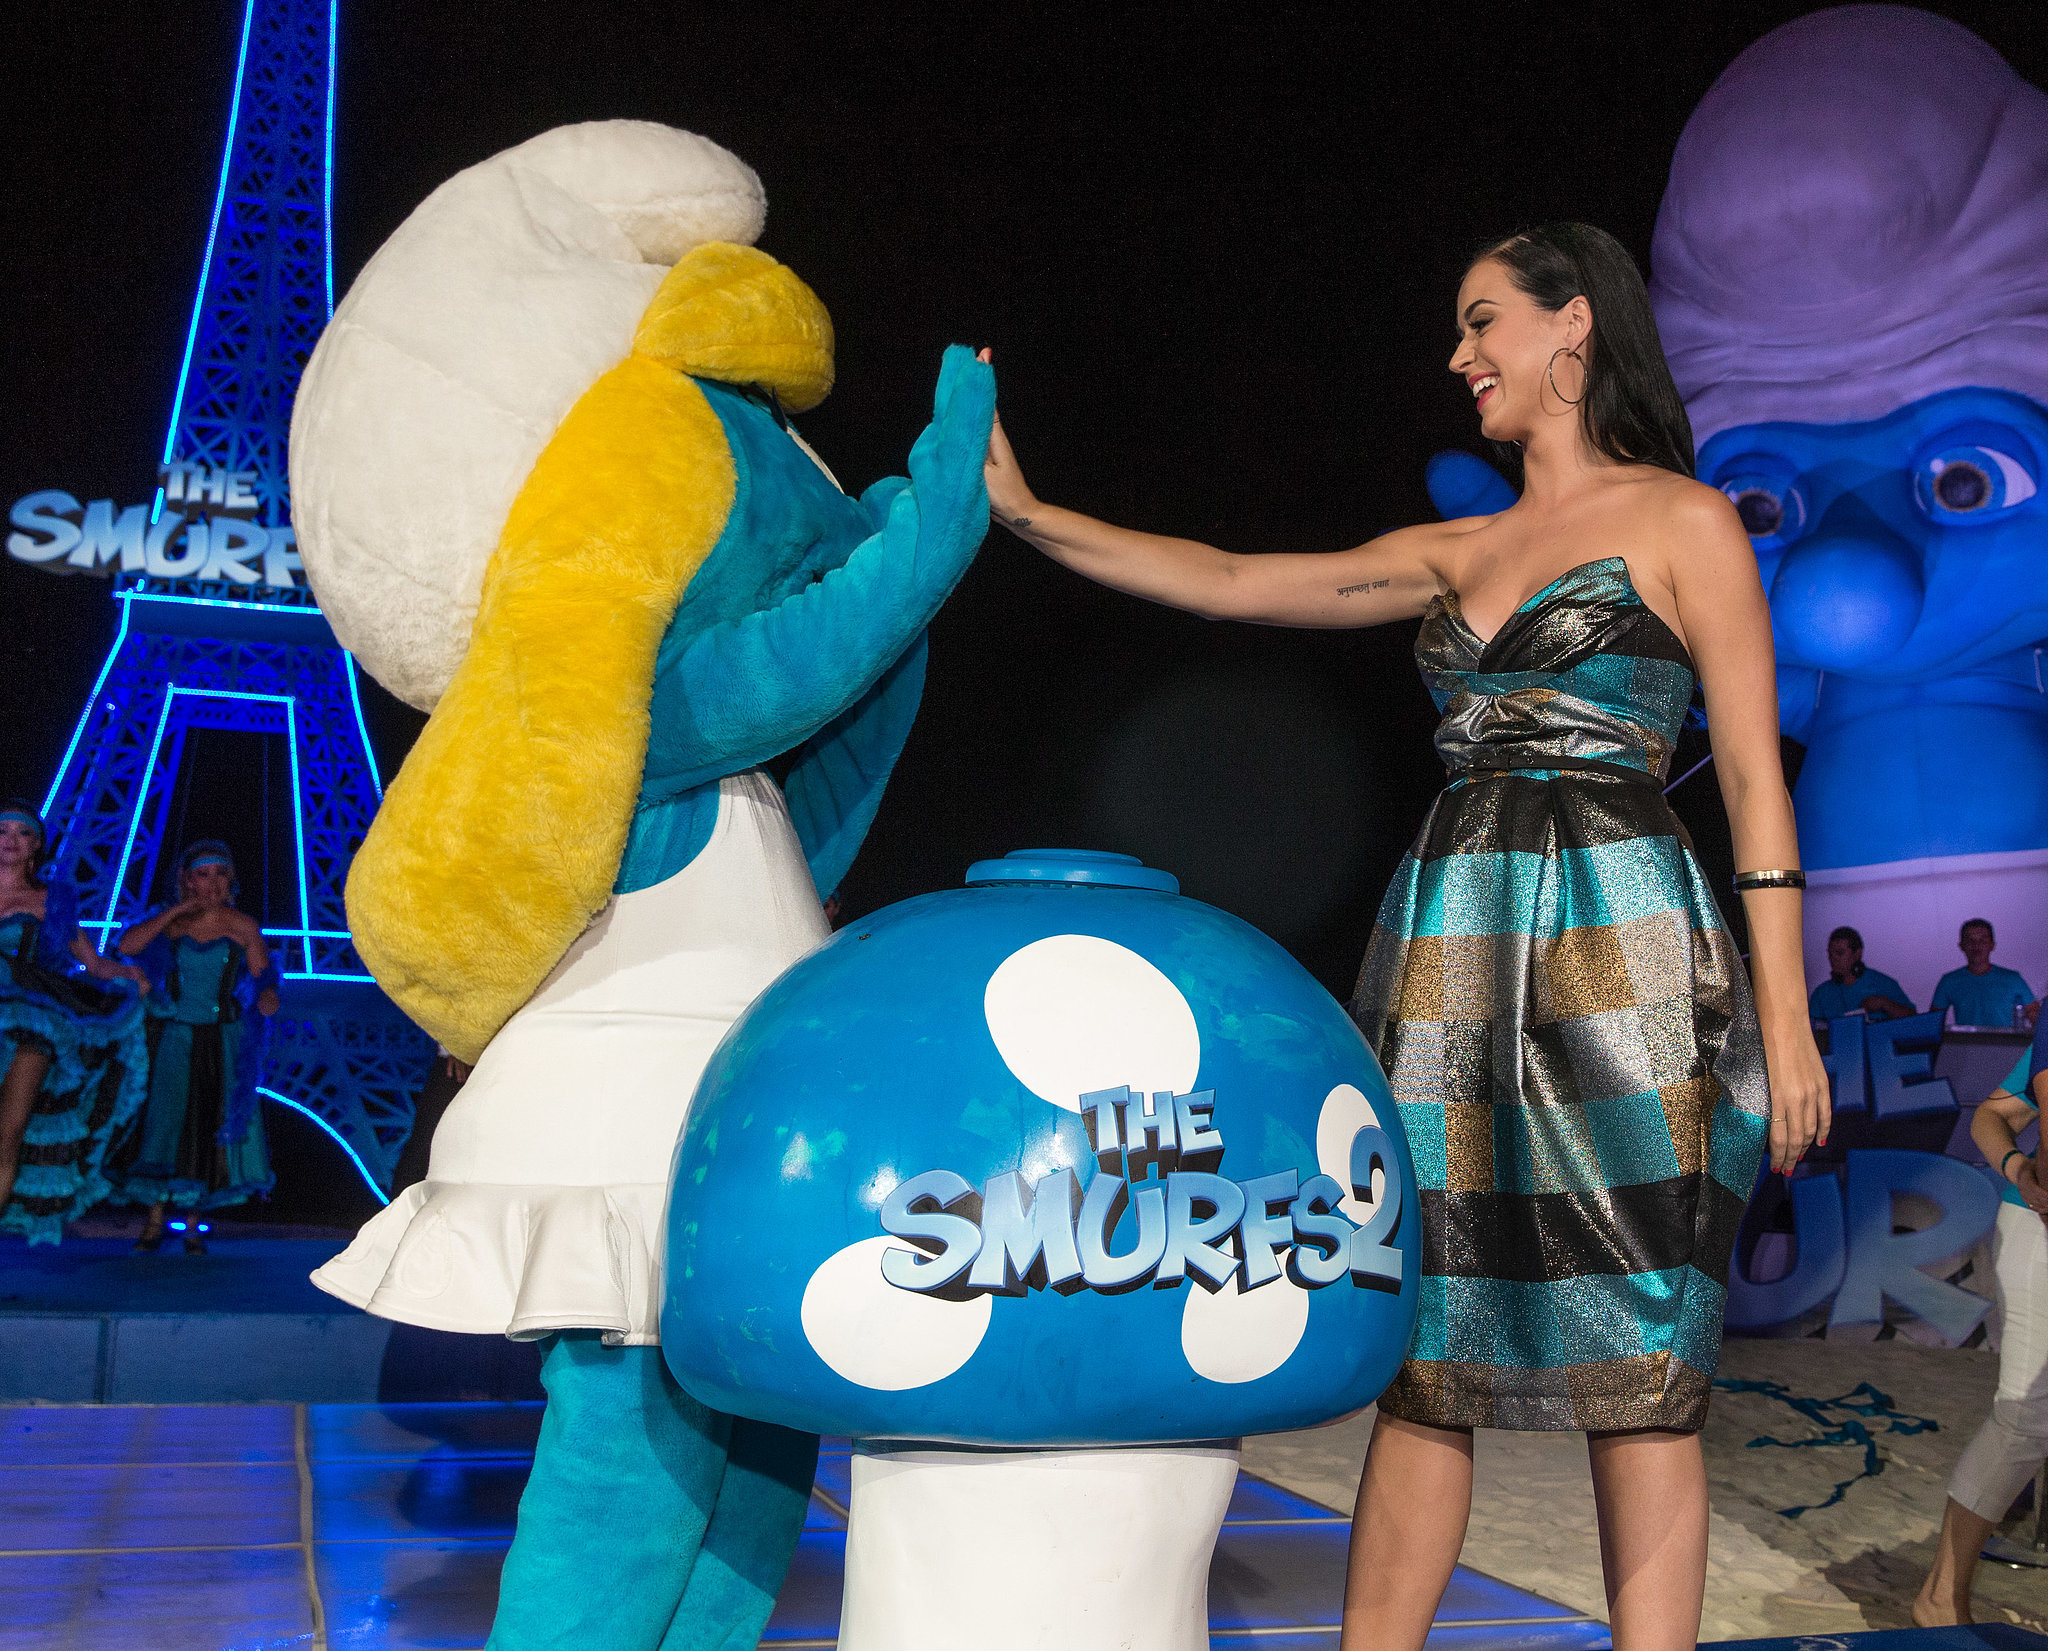 Katy Perry shared a moment with Smurfette at the Smurfs 2 premiere in Mexico in April 2013.